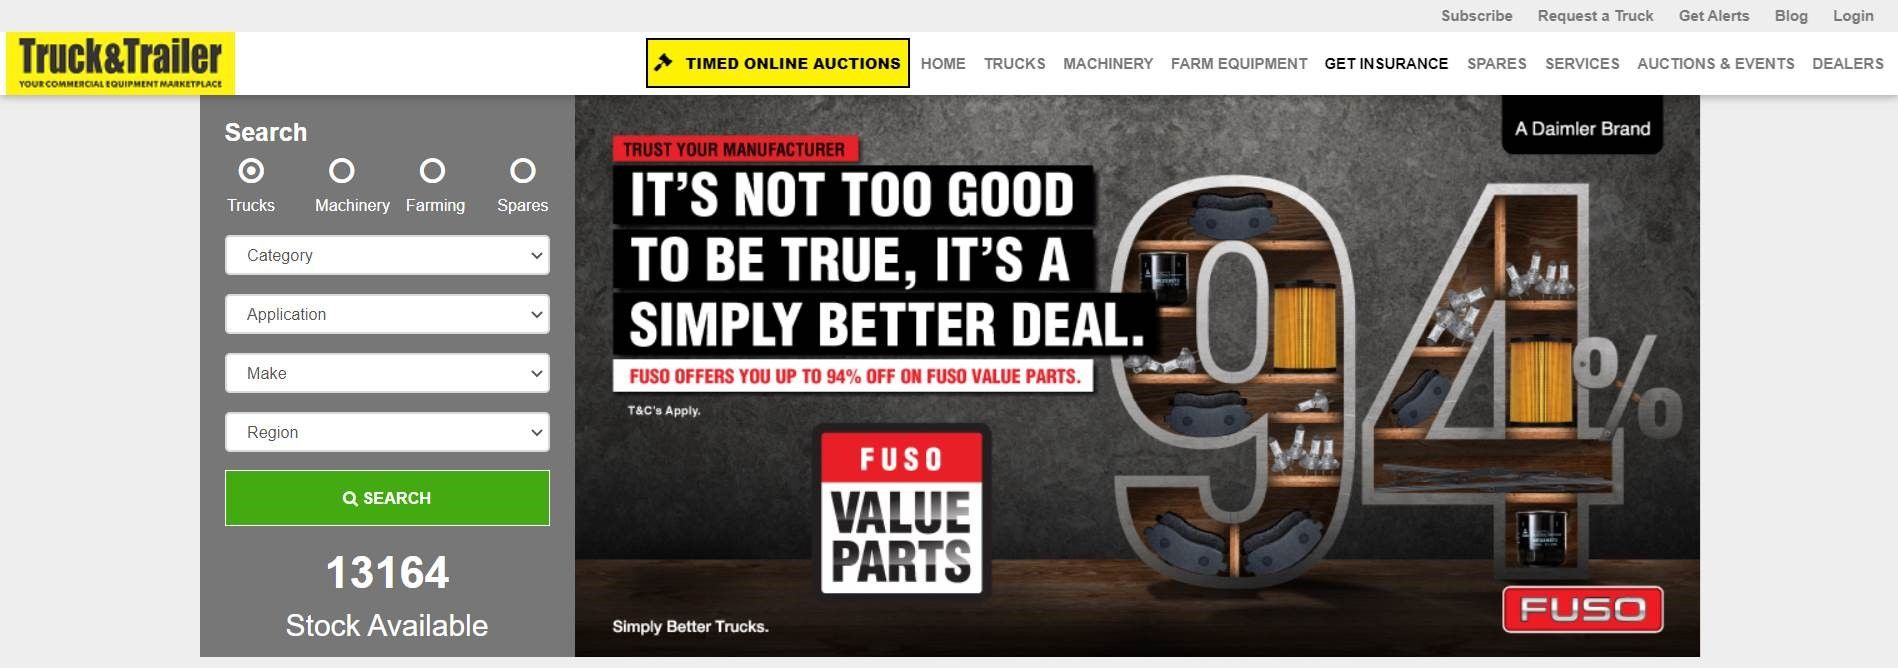 Home Page Banner | Truck & Trailer